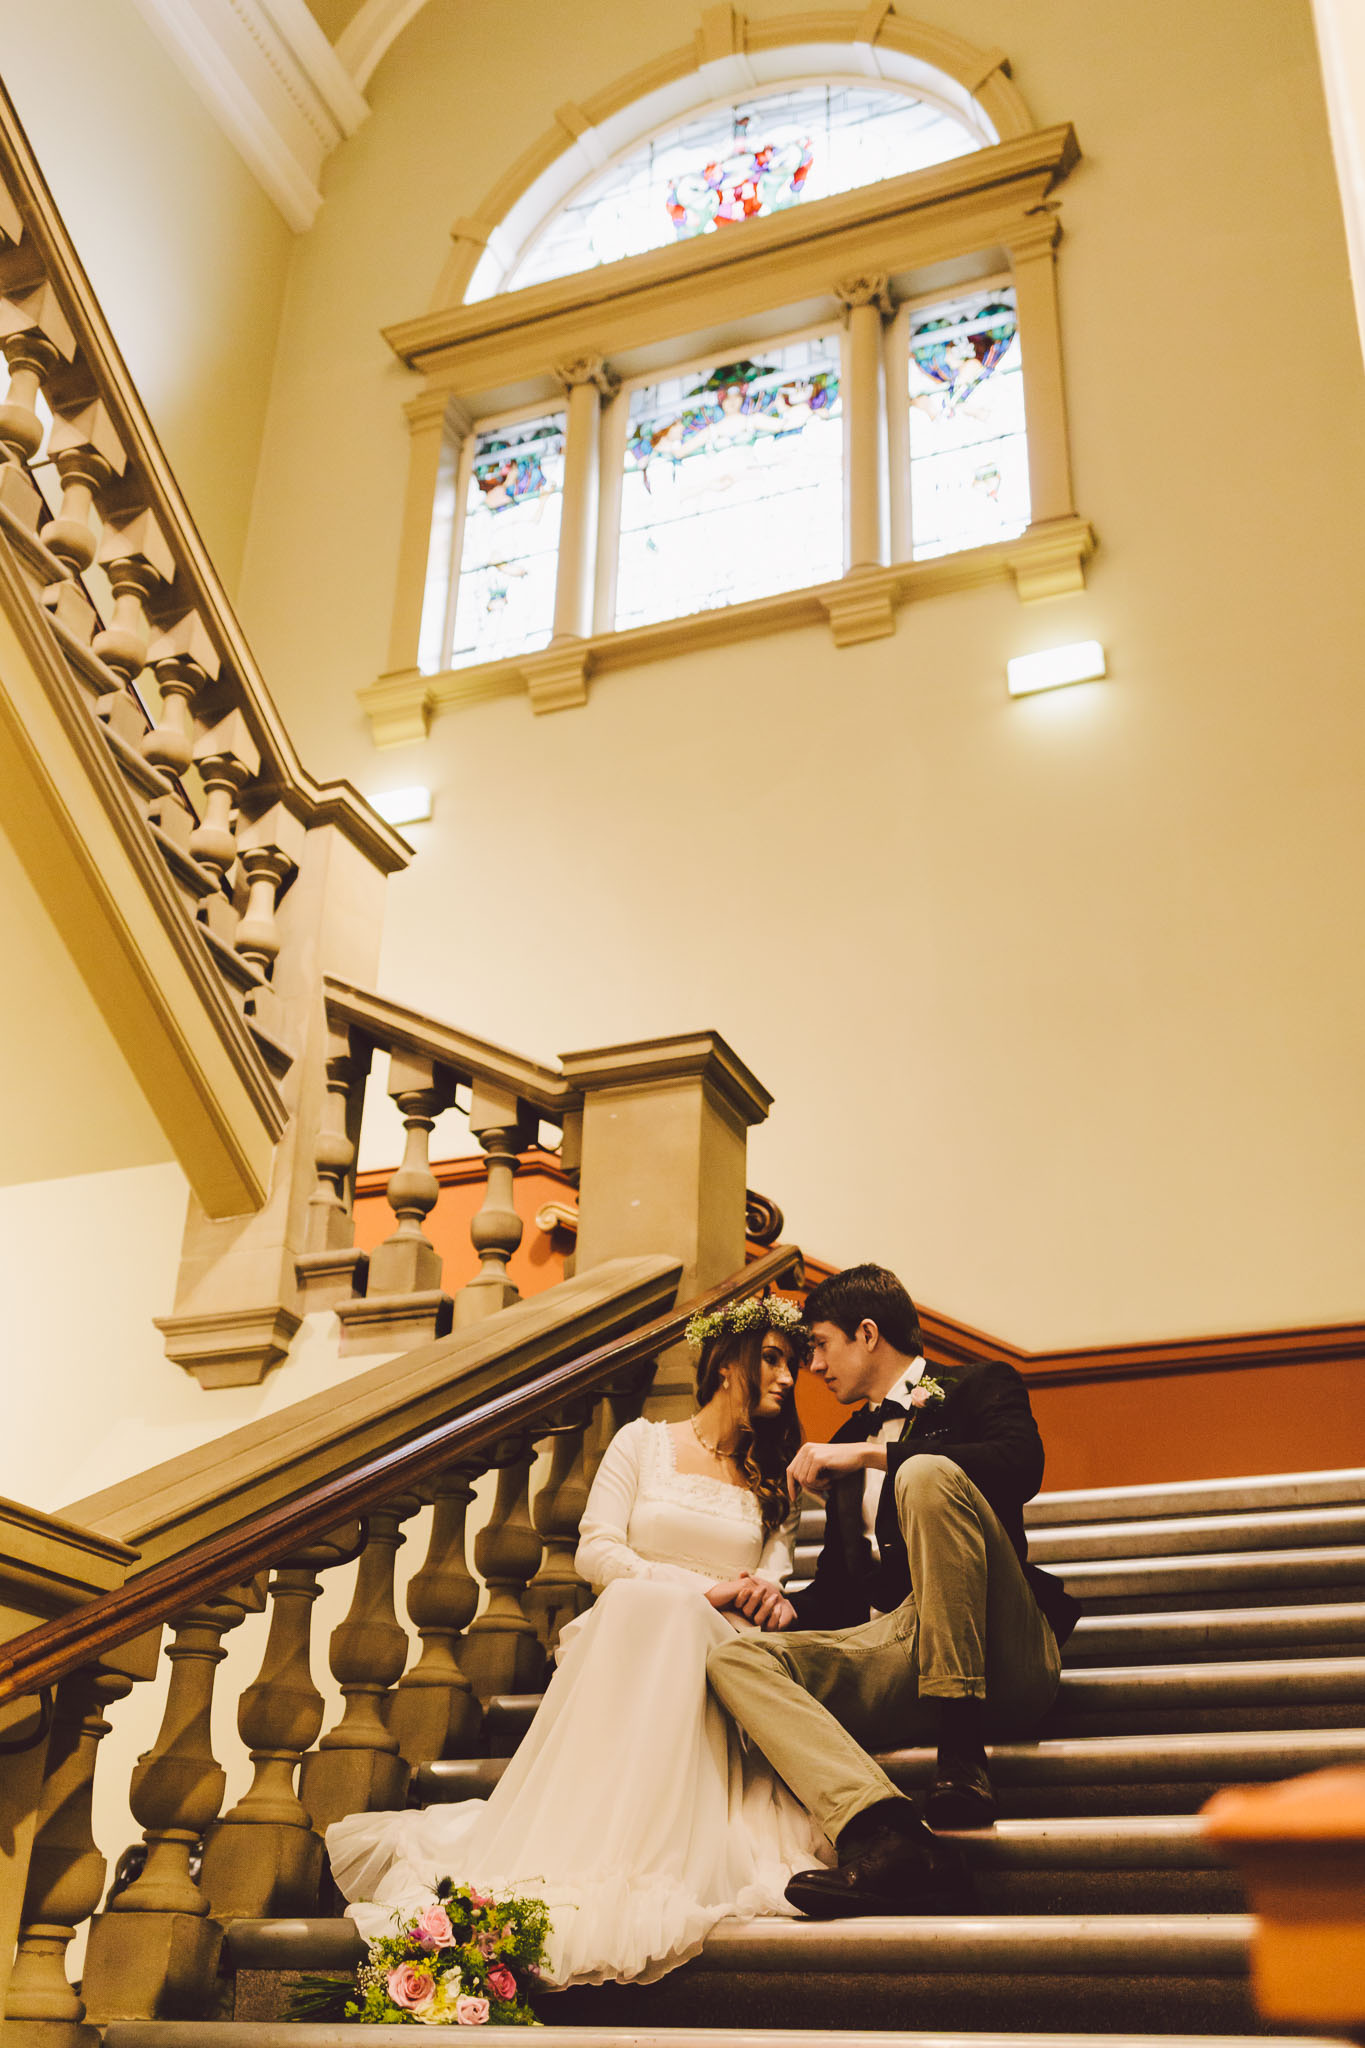 Marble staircase at the Laing Art Gallery - Part of our vintage styled wedding photoshoots